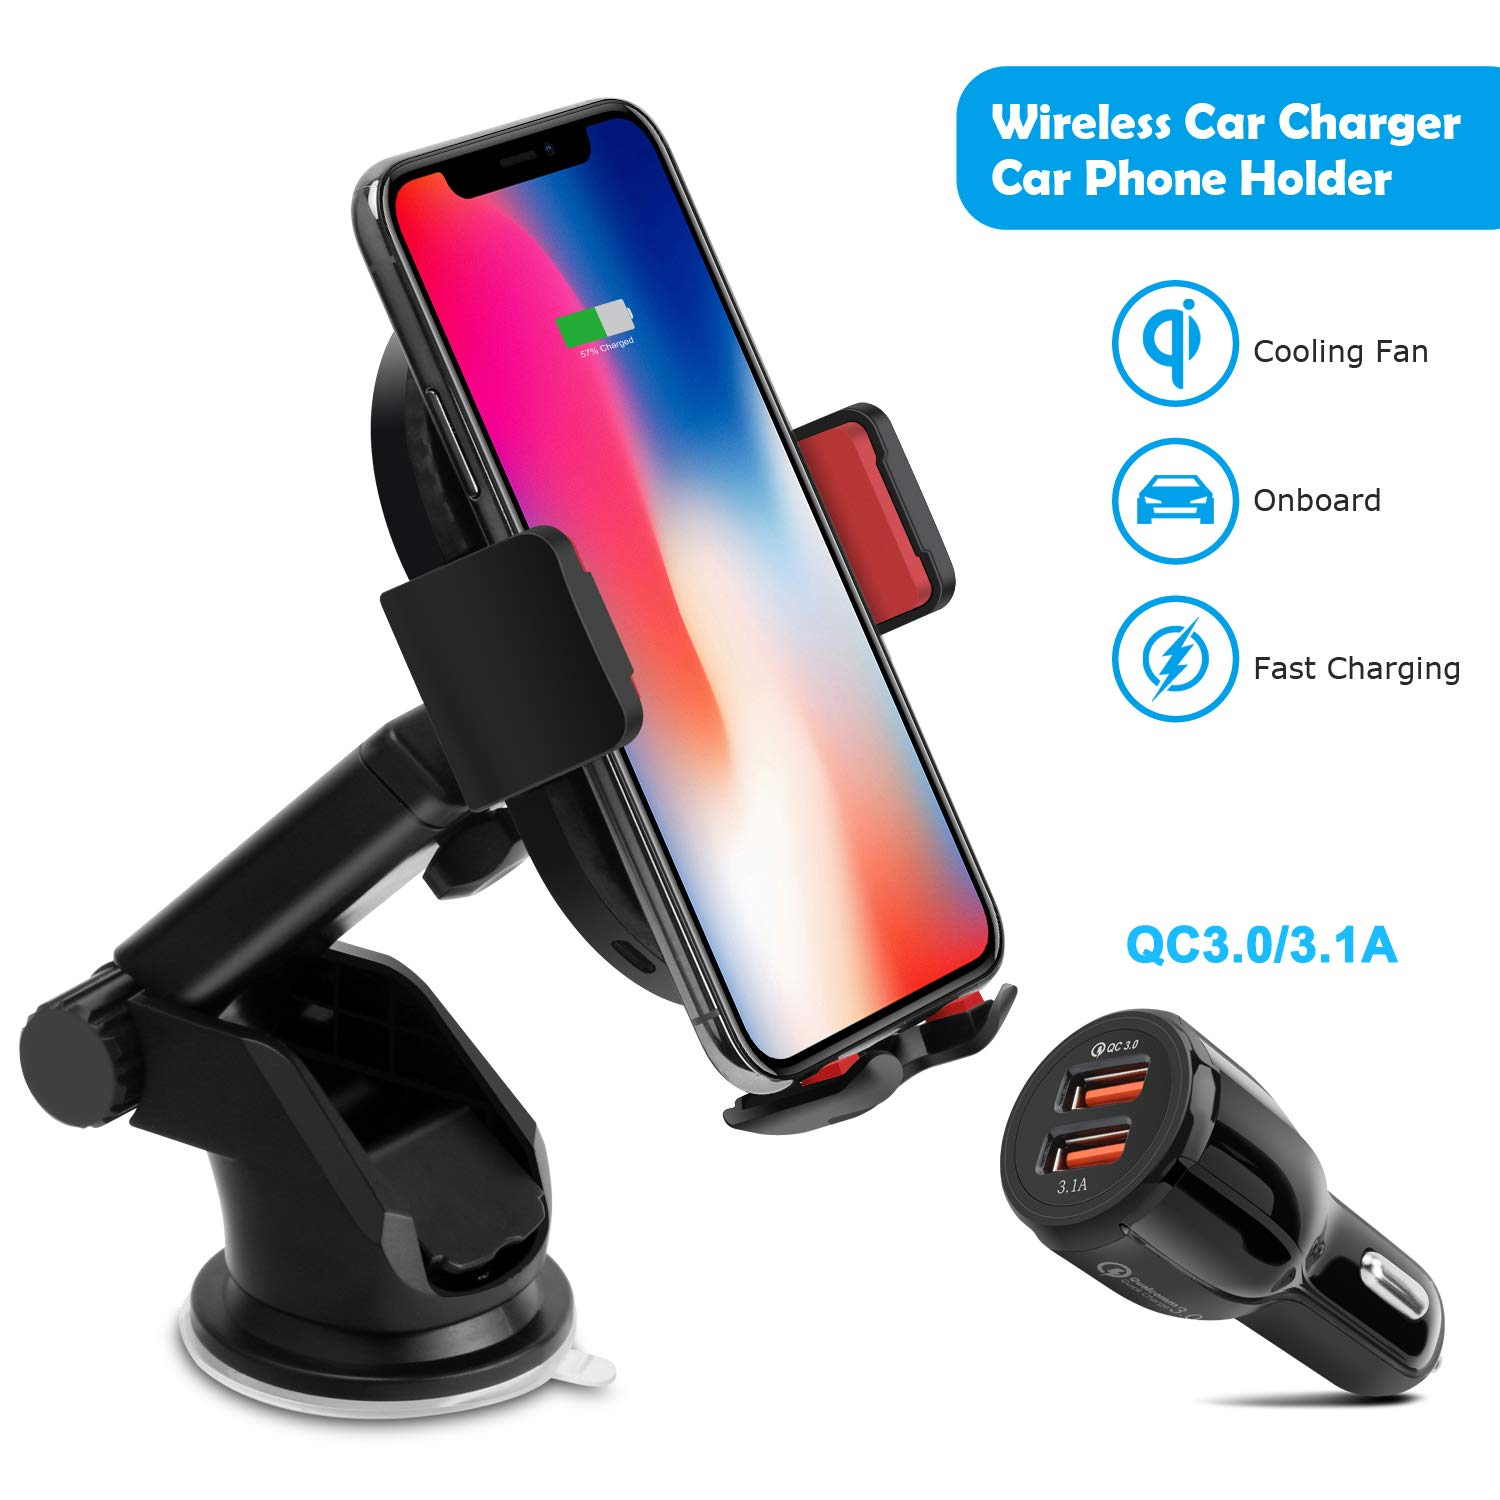 10W Wireless Car Charger, Detuosi Car Wireless Charger Car Phone Mount, Fast Charge for Samsung Galaxy S9/S8 plus/S8/S7/S6 Note 8/5, Standard Charge for iPhone X/8/8 Plus and all Qi Enabled Phones